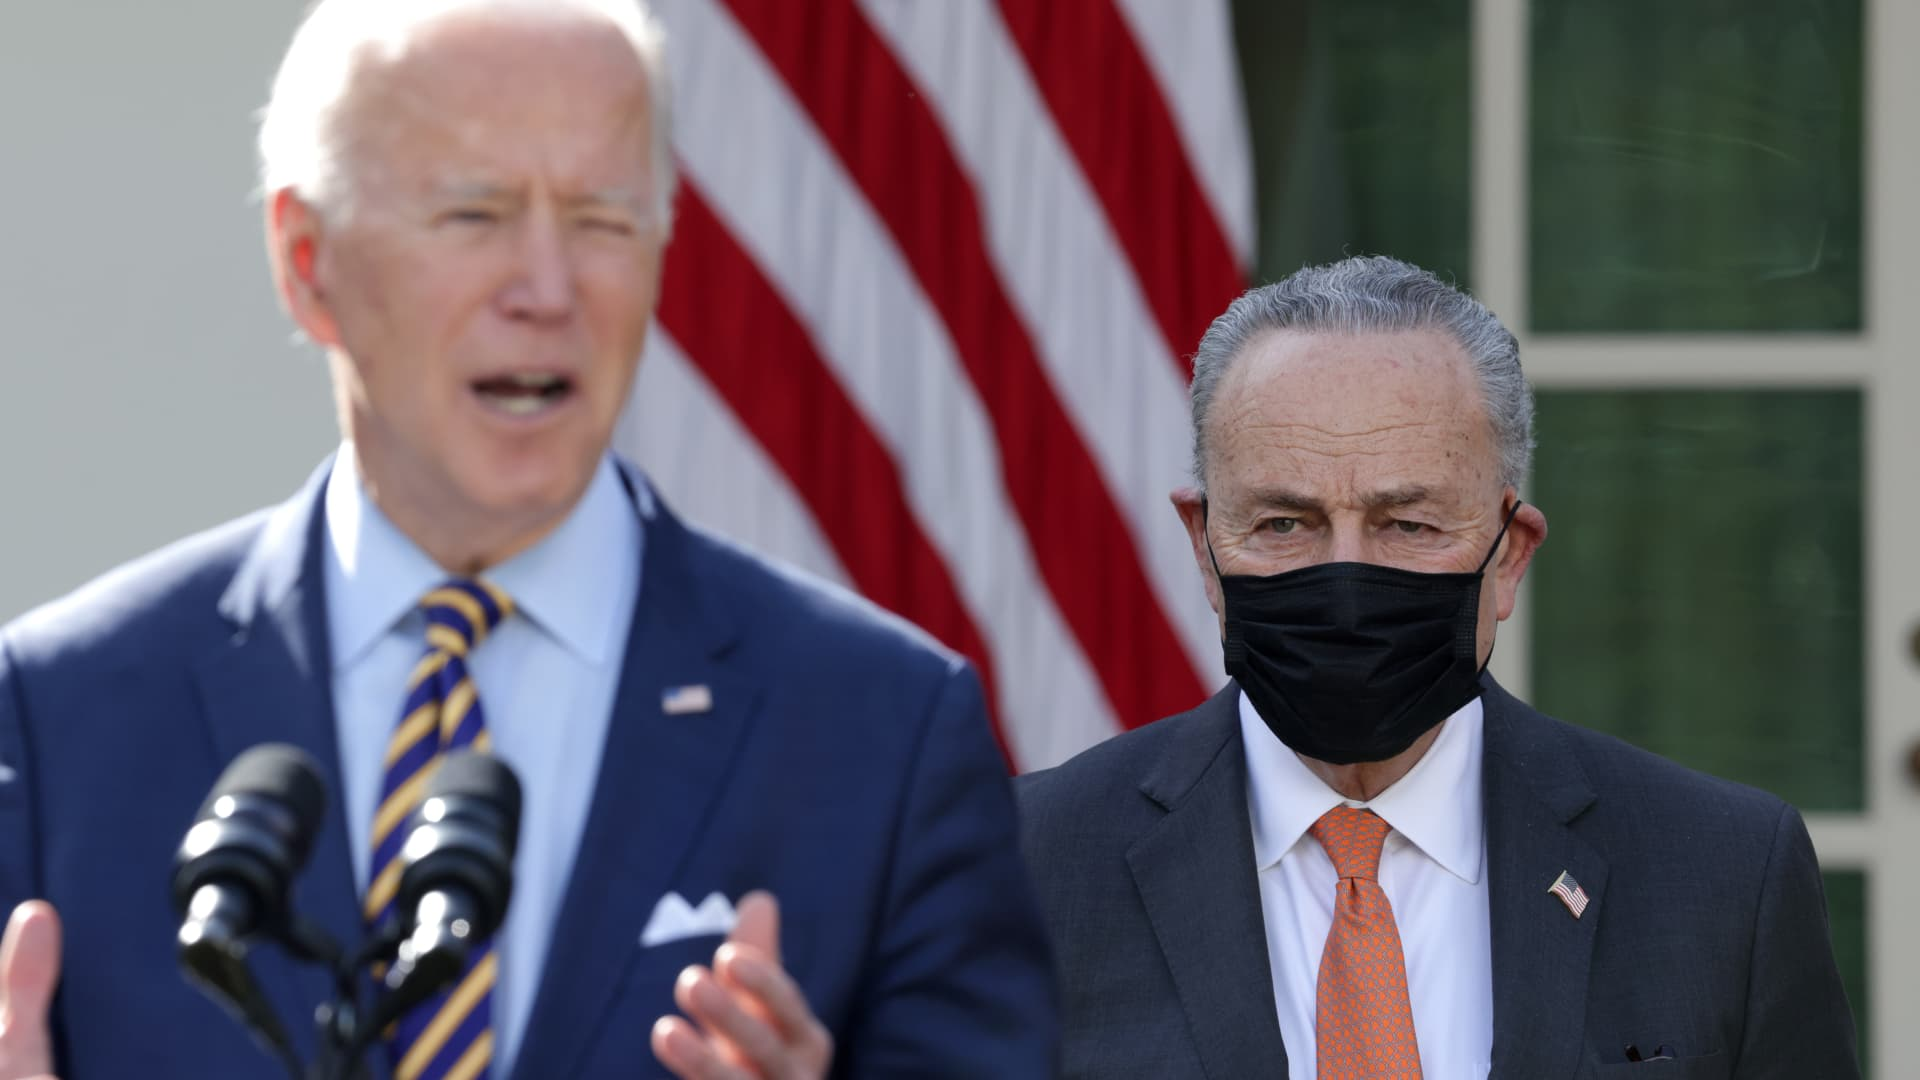 Senate Majority Leader Sen. Chuck Schumer (D-NY) (R) listens as U.S. President Joe Biden speaks during an event on the American Rescue Plan in the Rose Garden of the White House on March 12, 2021 in Washington, DC.